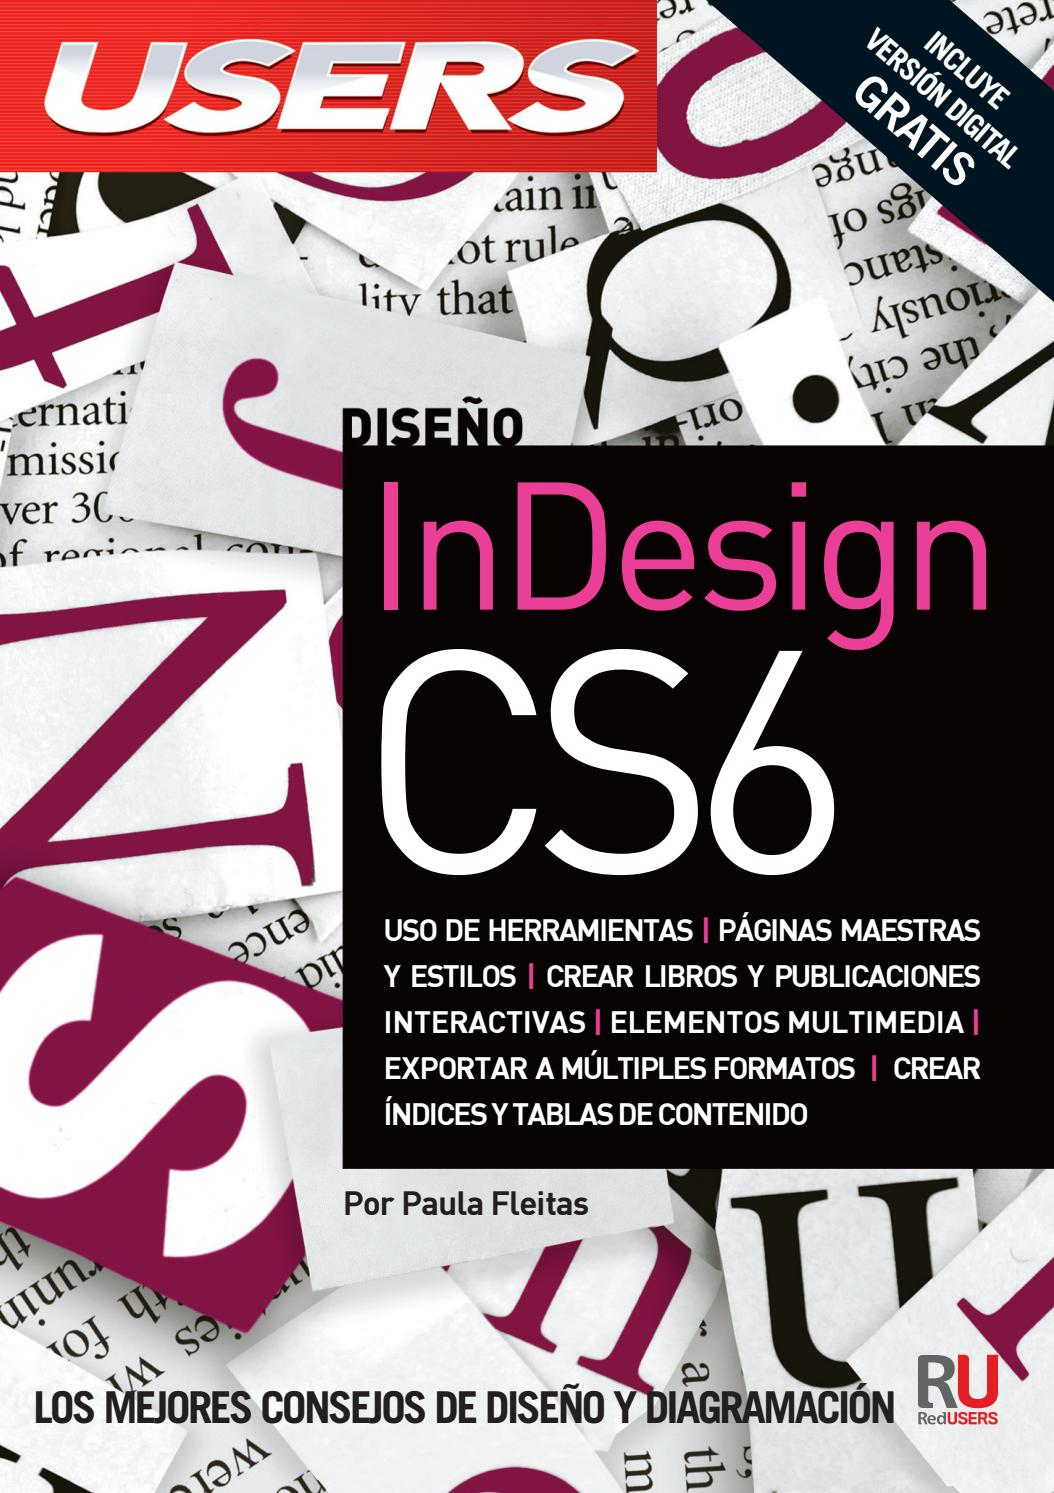 Indesign cs6 by La Libreta Territorio Creativo - issuu